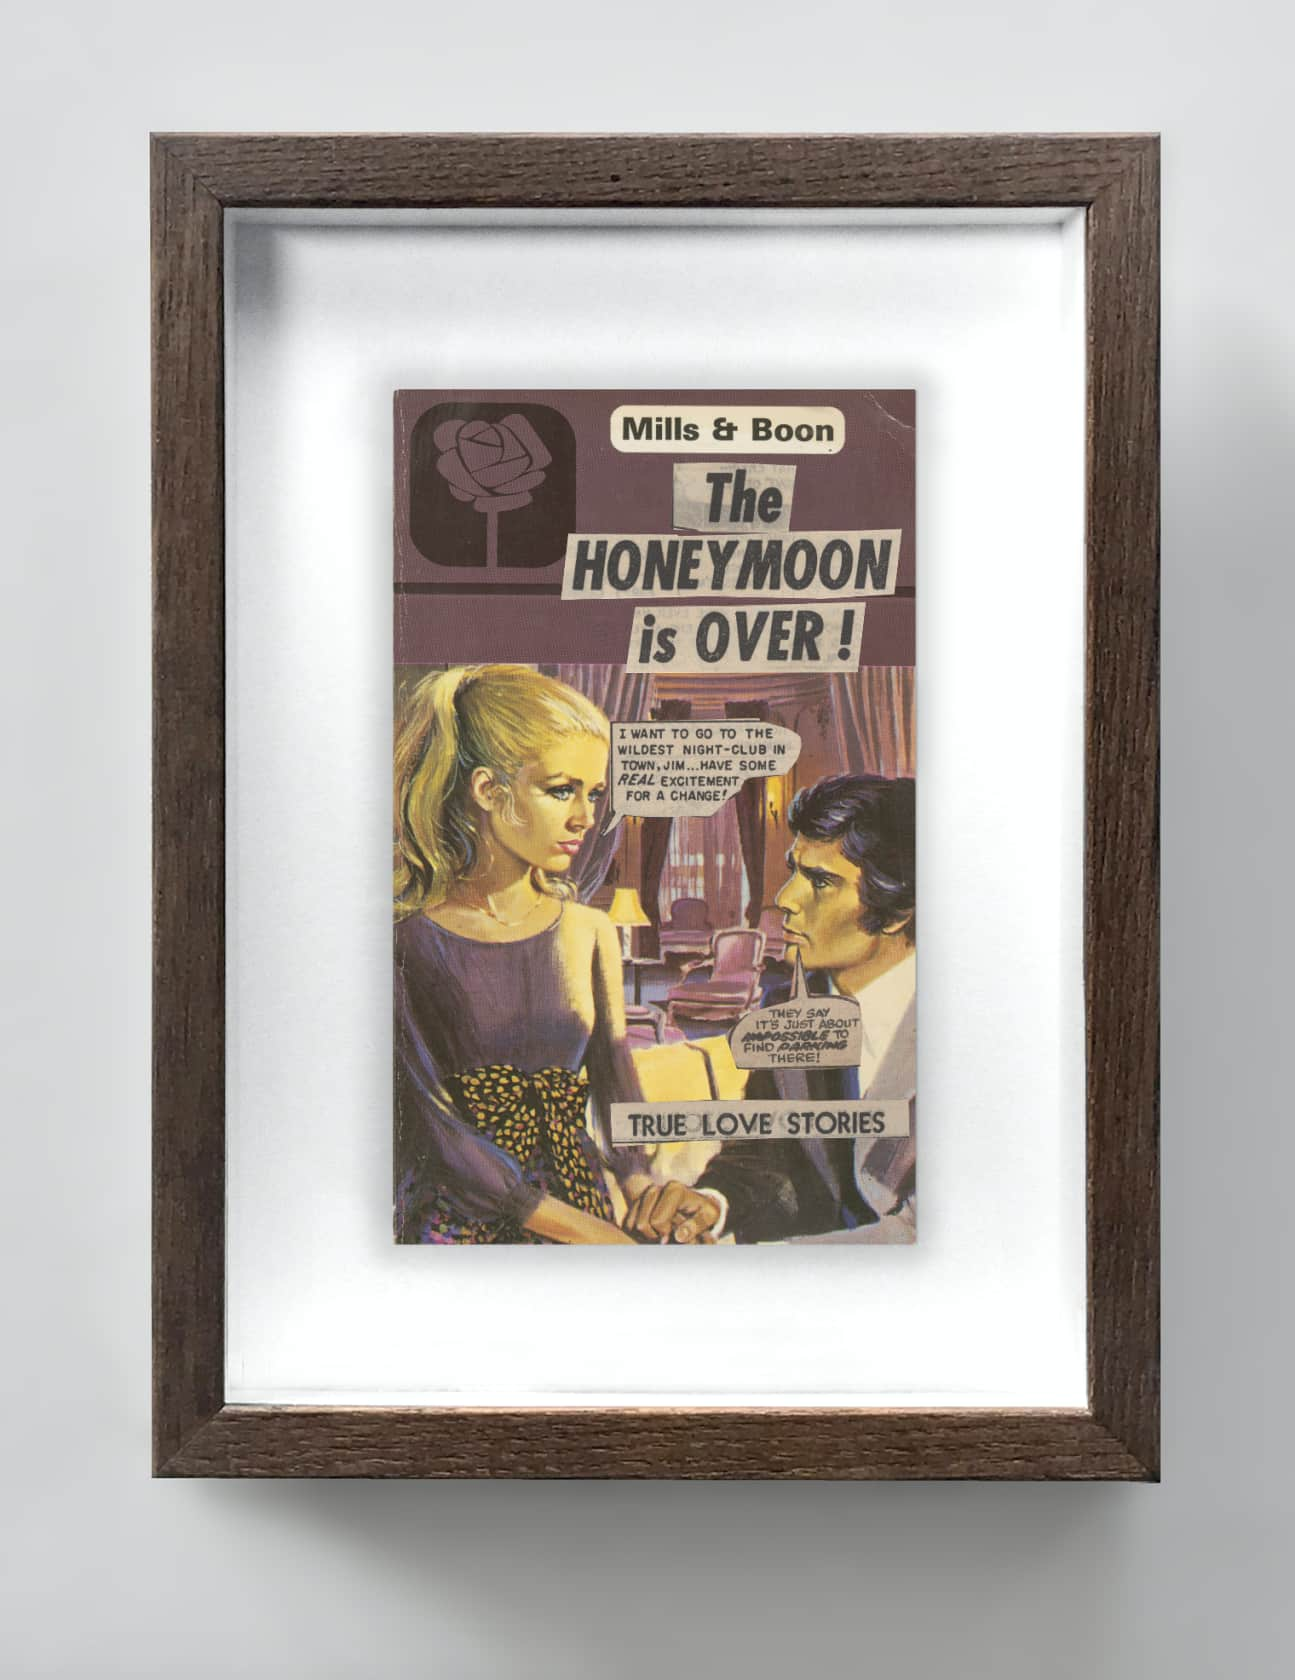 the connor brothers The Honeymoon Is Over (Purple) Collage on vintage paperback book